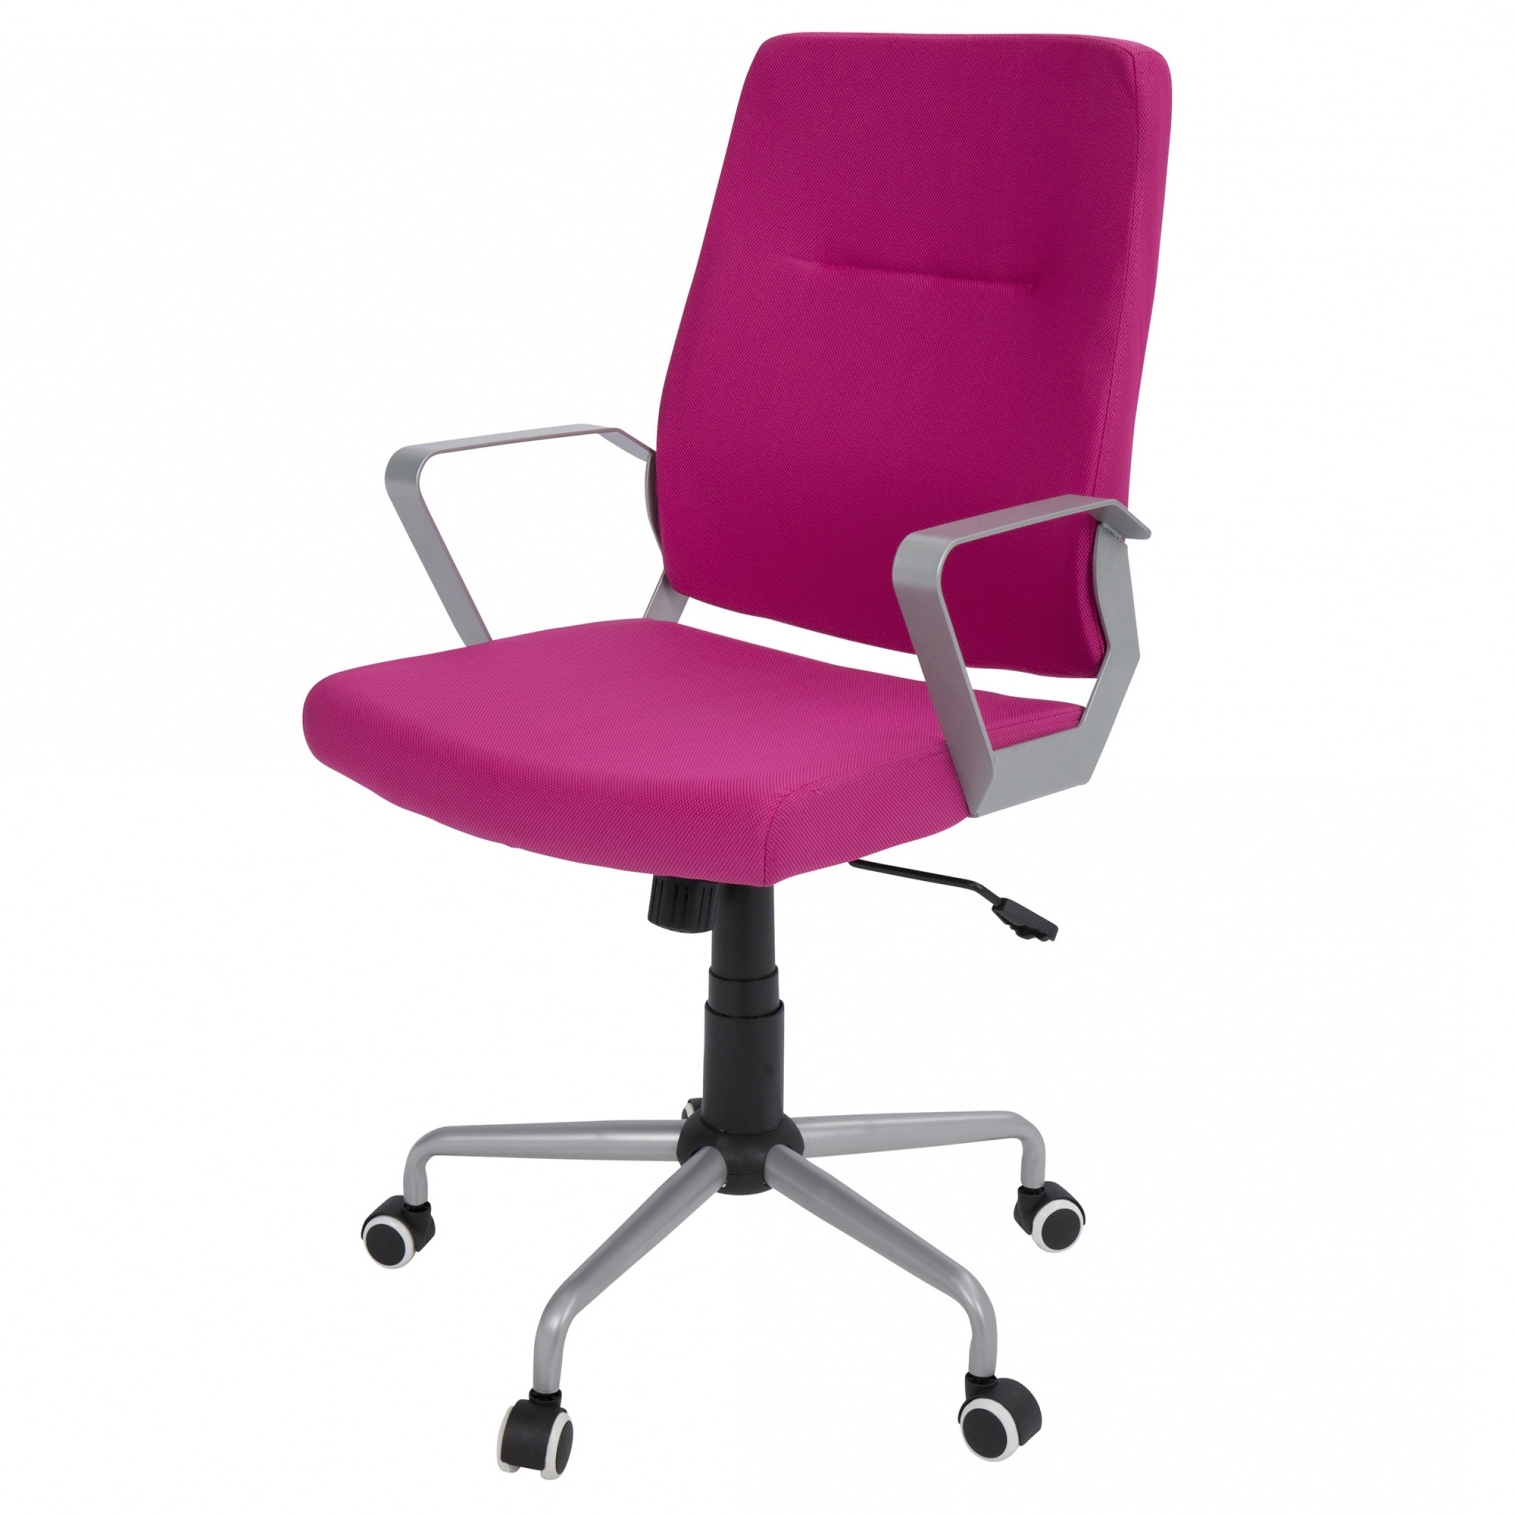 Most Recently Released Pink Executive Office Chair – Best Office Desk Chair Regarding Pink Executive Office Chairs (View 3 of 20)